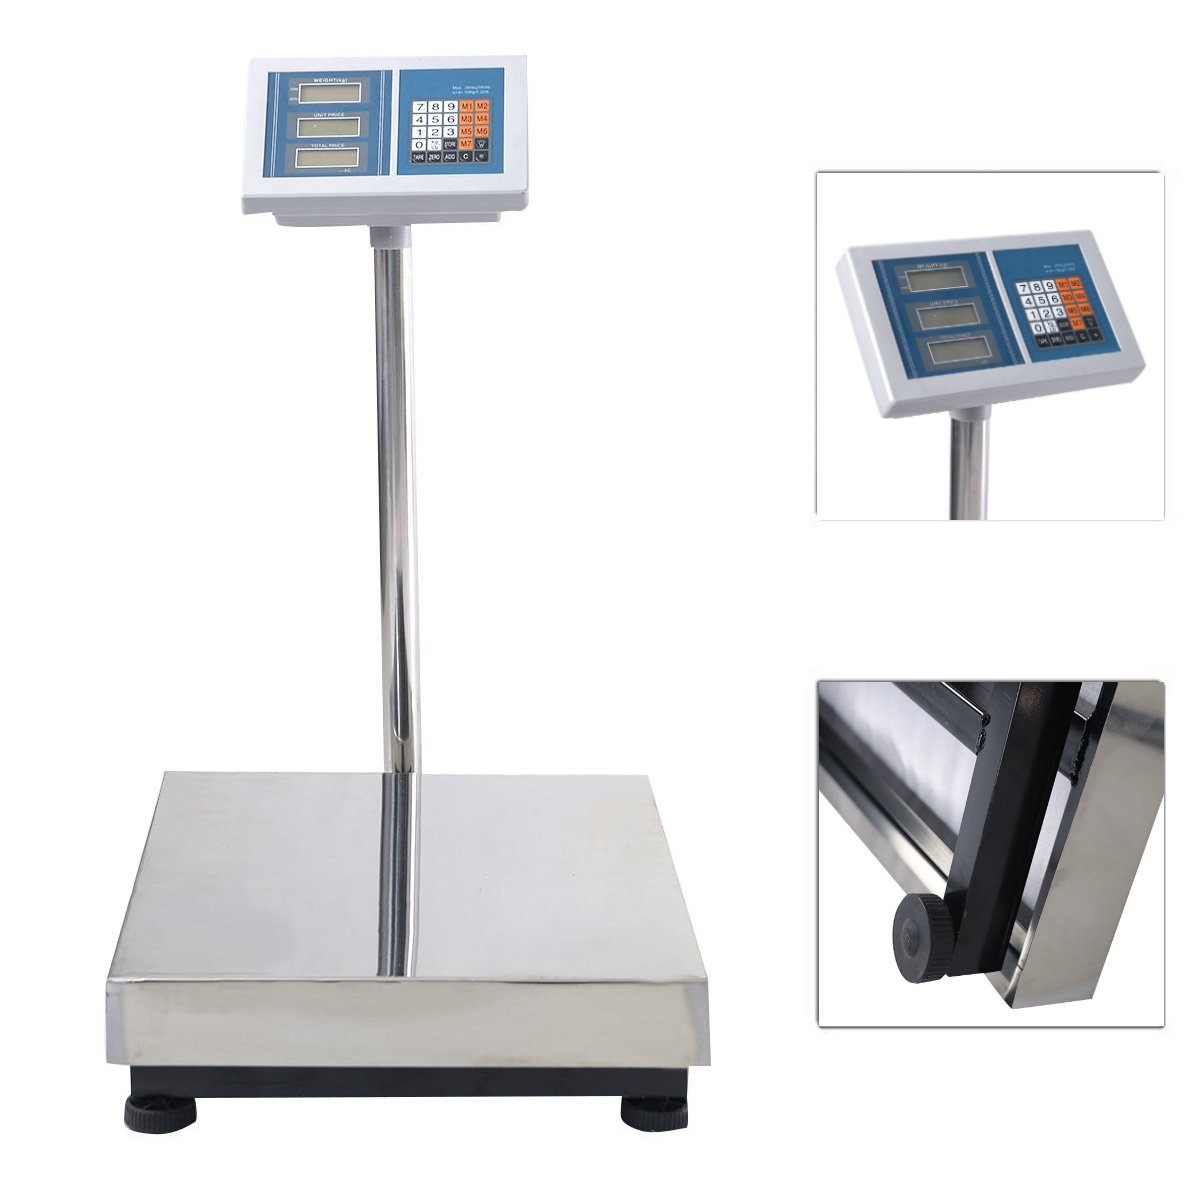 660LB / 300KG Weight Computing Digital Floor Platform Scale Bench | Weighing Post Office Shipping Food Agriculture Livestock by Eopshorus